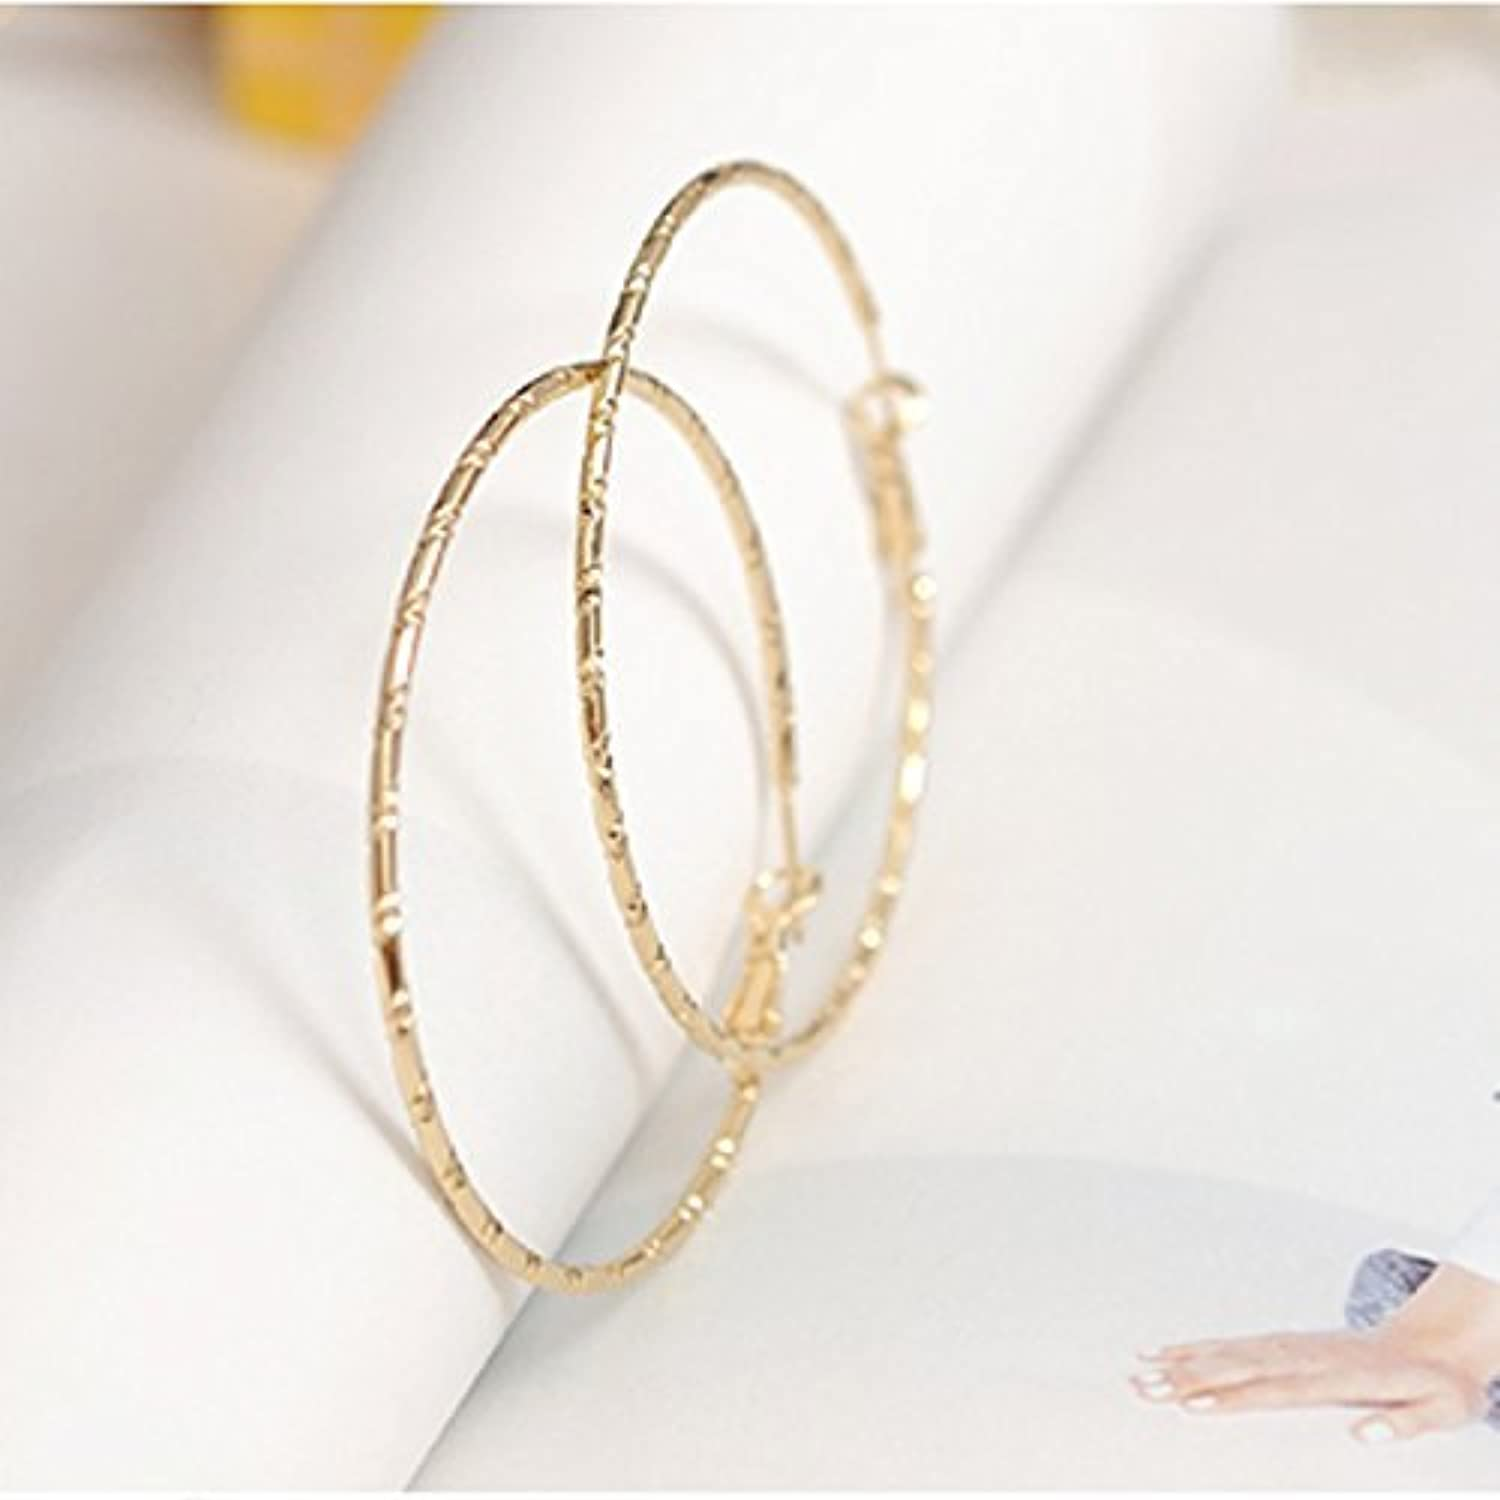 Kathyt Store INC 1 Pairs gold color Fashion Wild Big Circle Earrings Bamboo 2.3 Inch Hoop Earrings (gold)